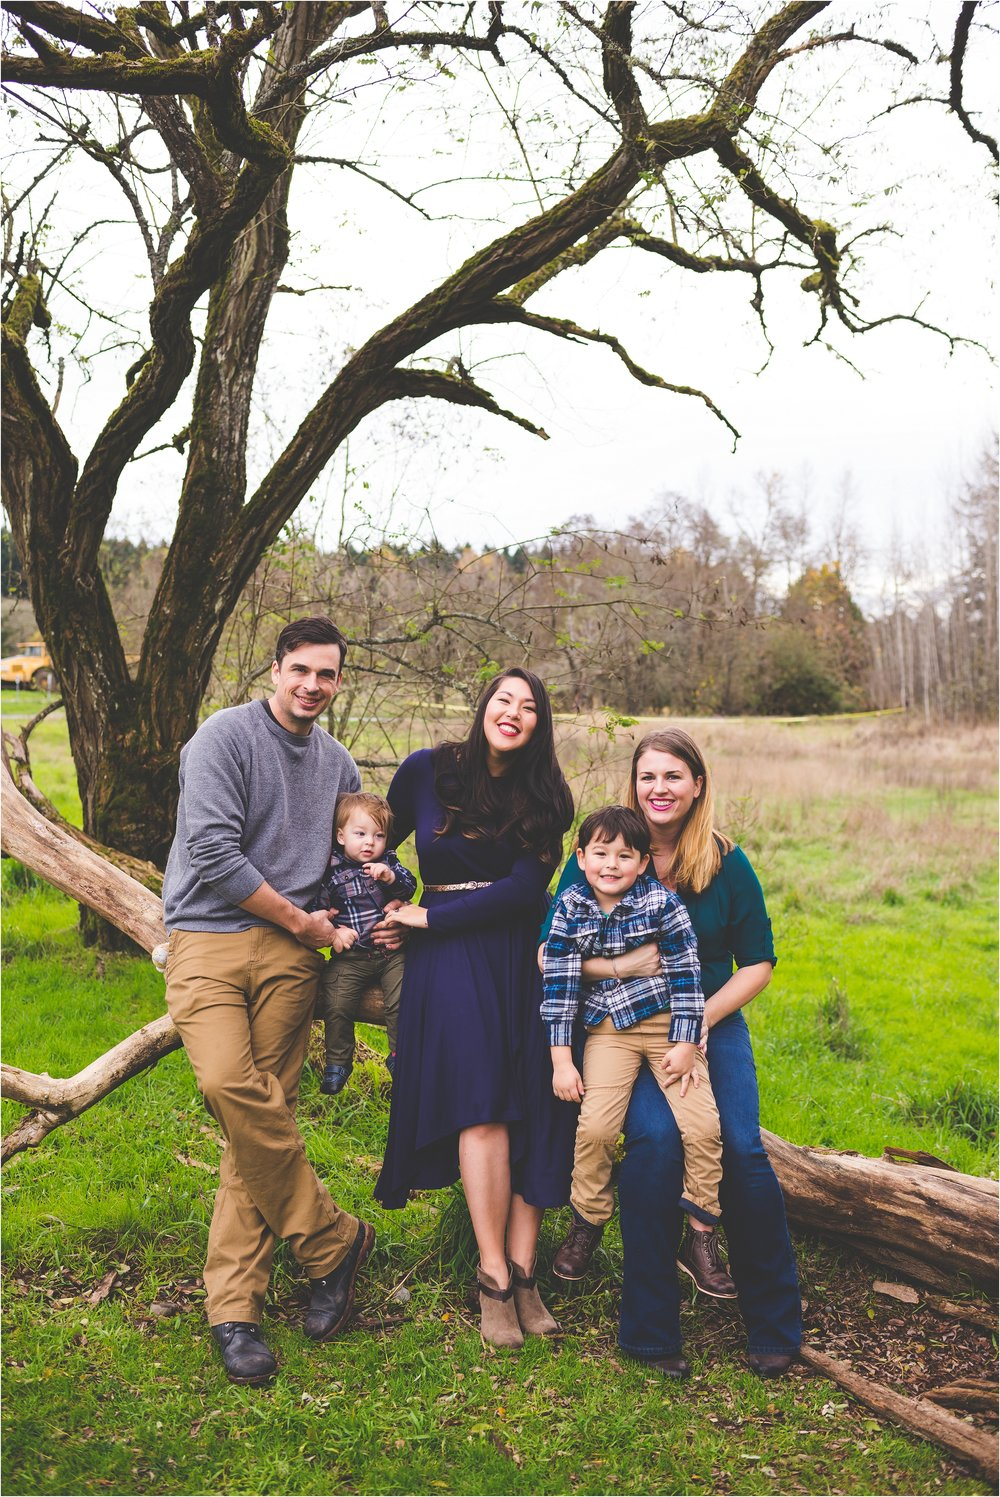 fort-steilacoom-park-family-session-jannicka-mayte-pacific-northwest-lifestyle-photographer_0033.jpg